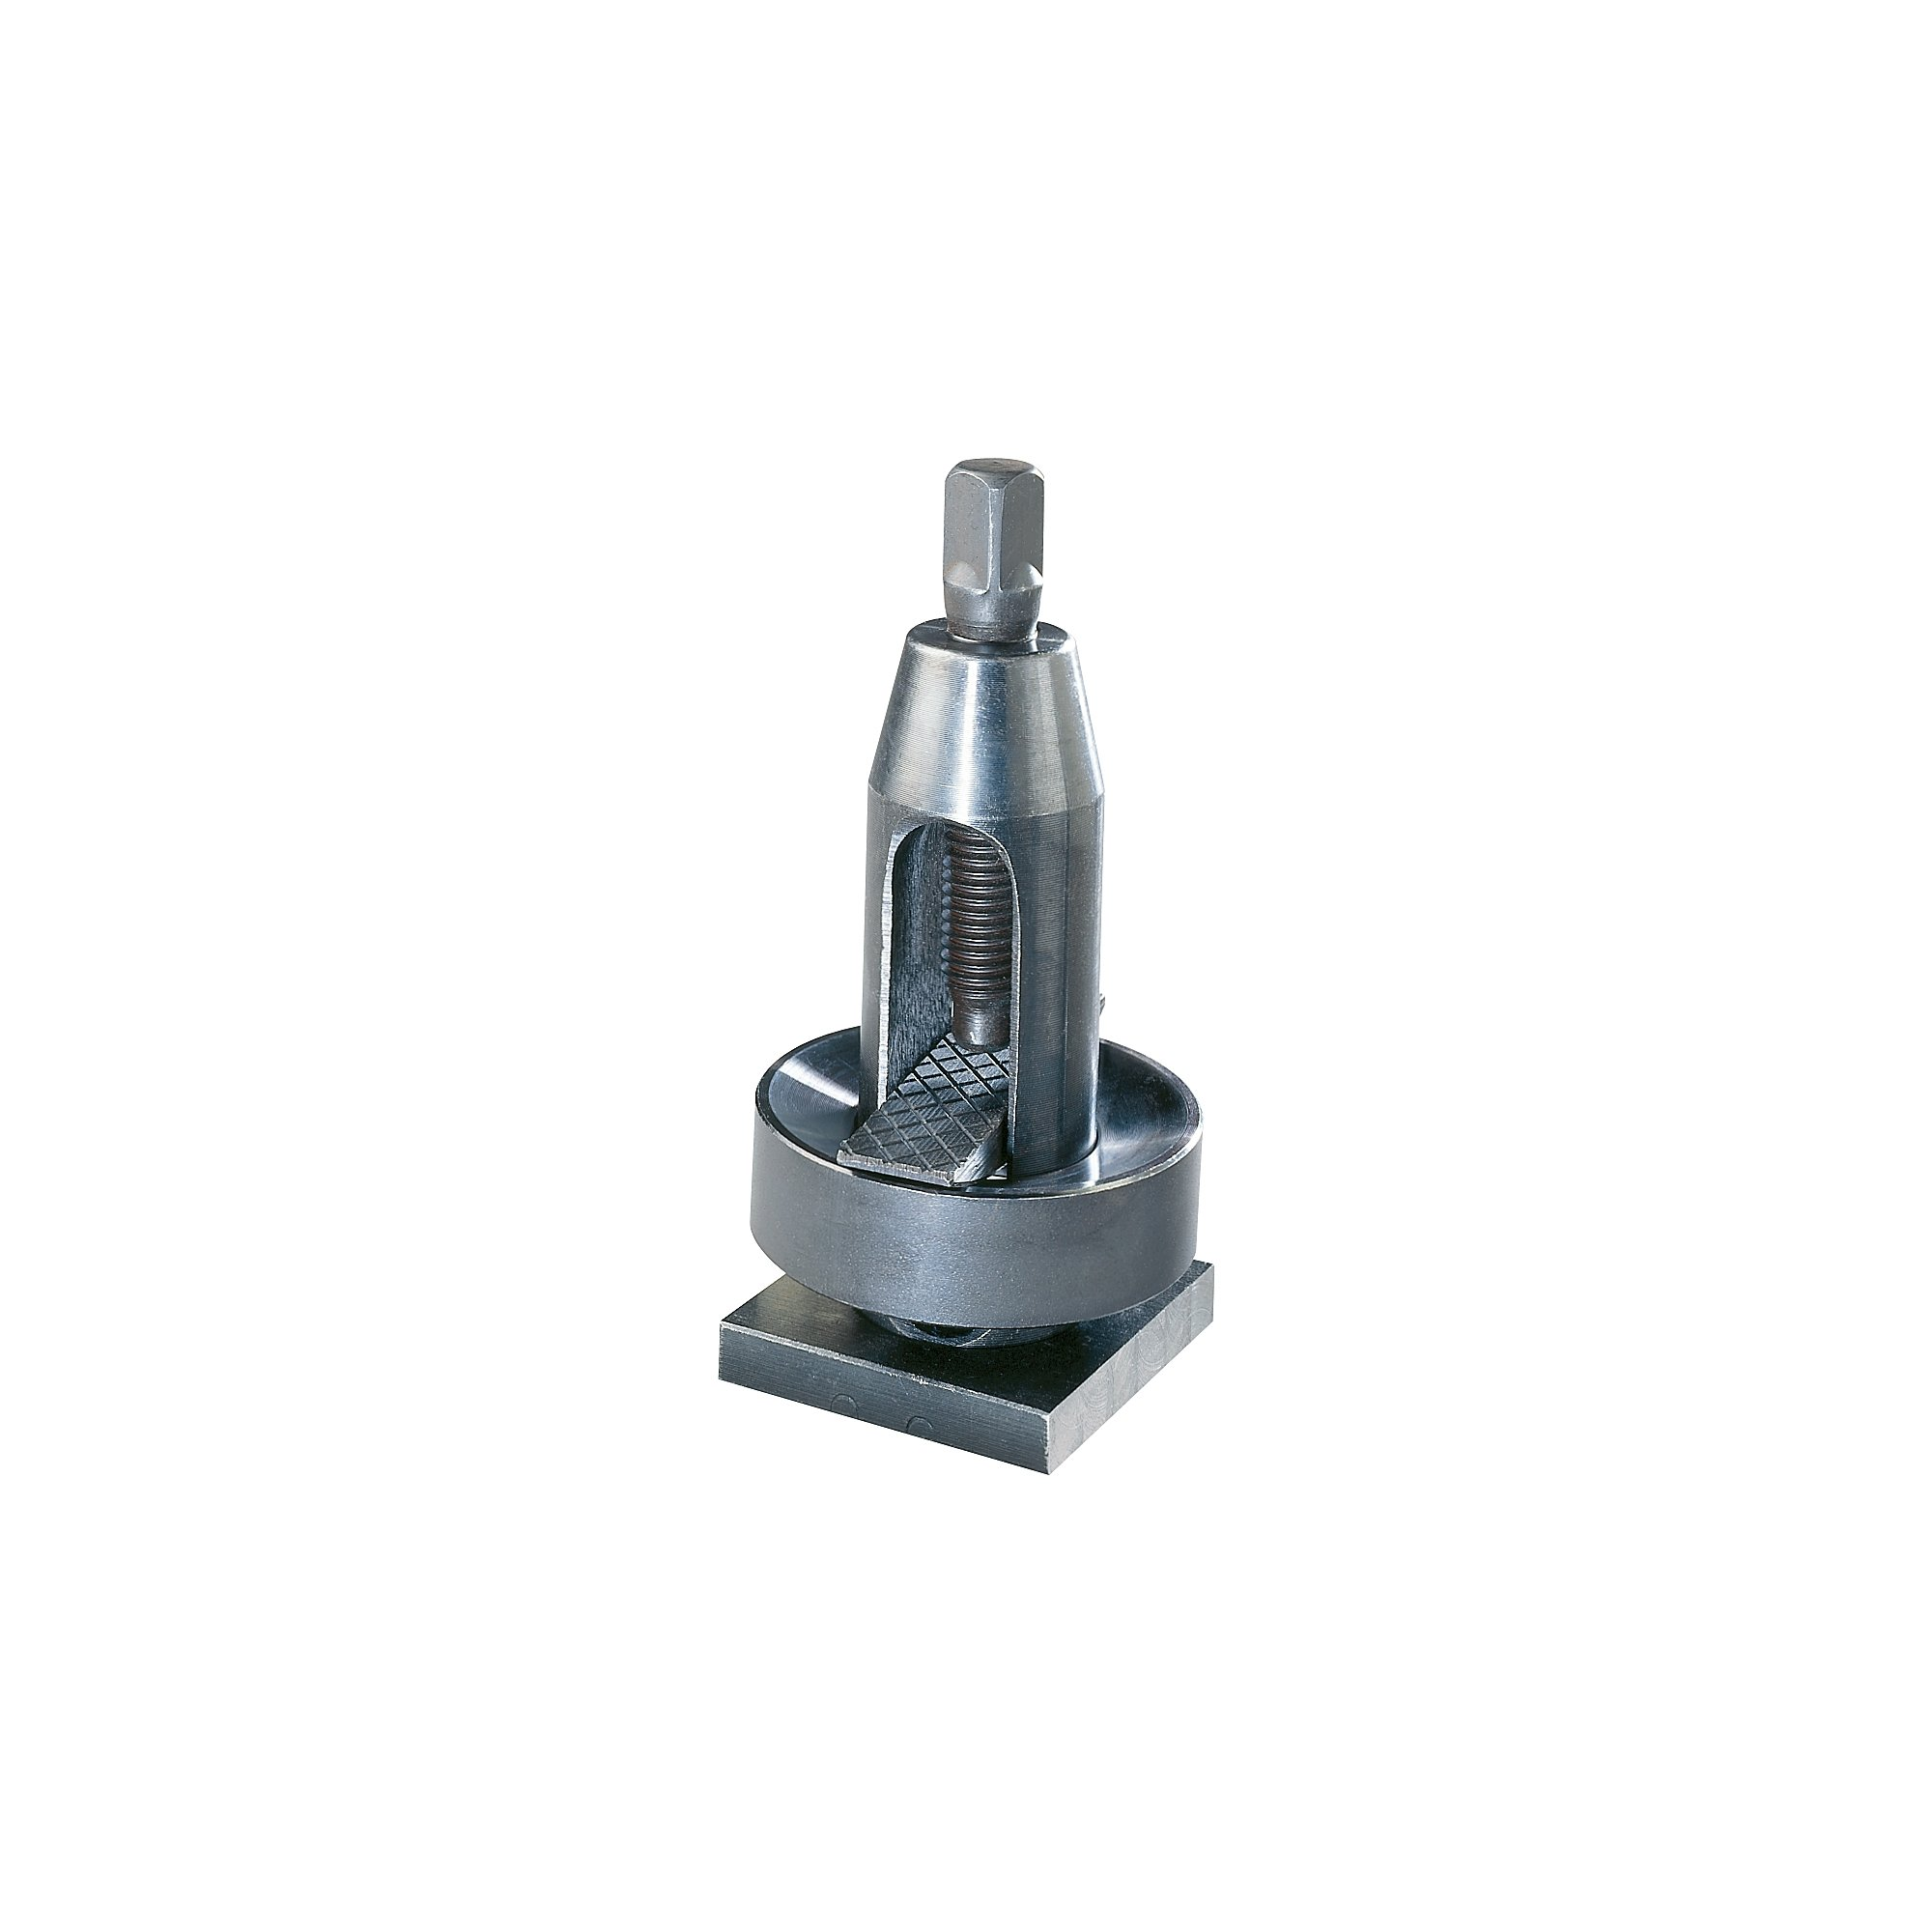 RP 321431 STP-13BD, Single Tool Post for 321357A, 321360A, 321810 - 321840